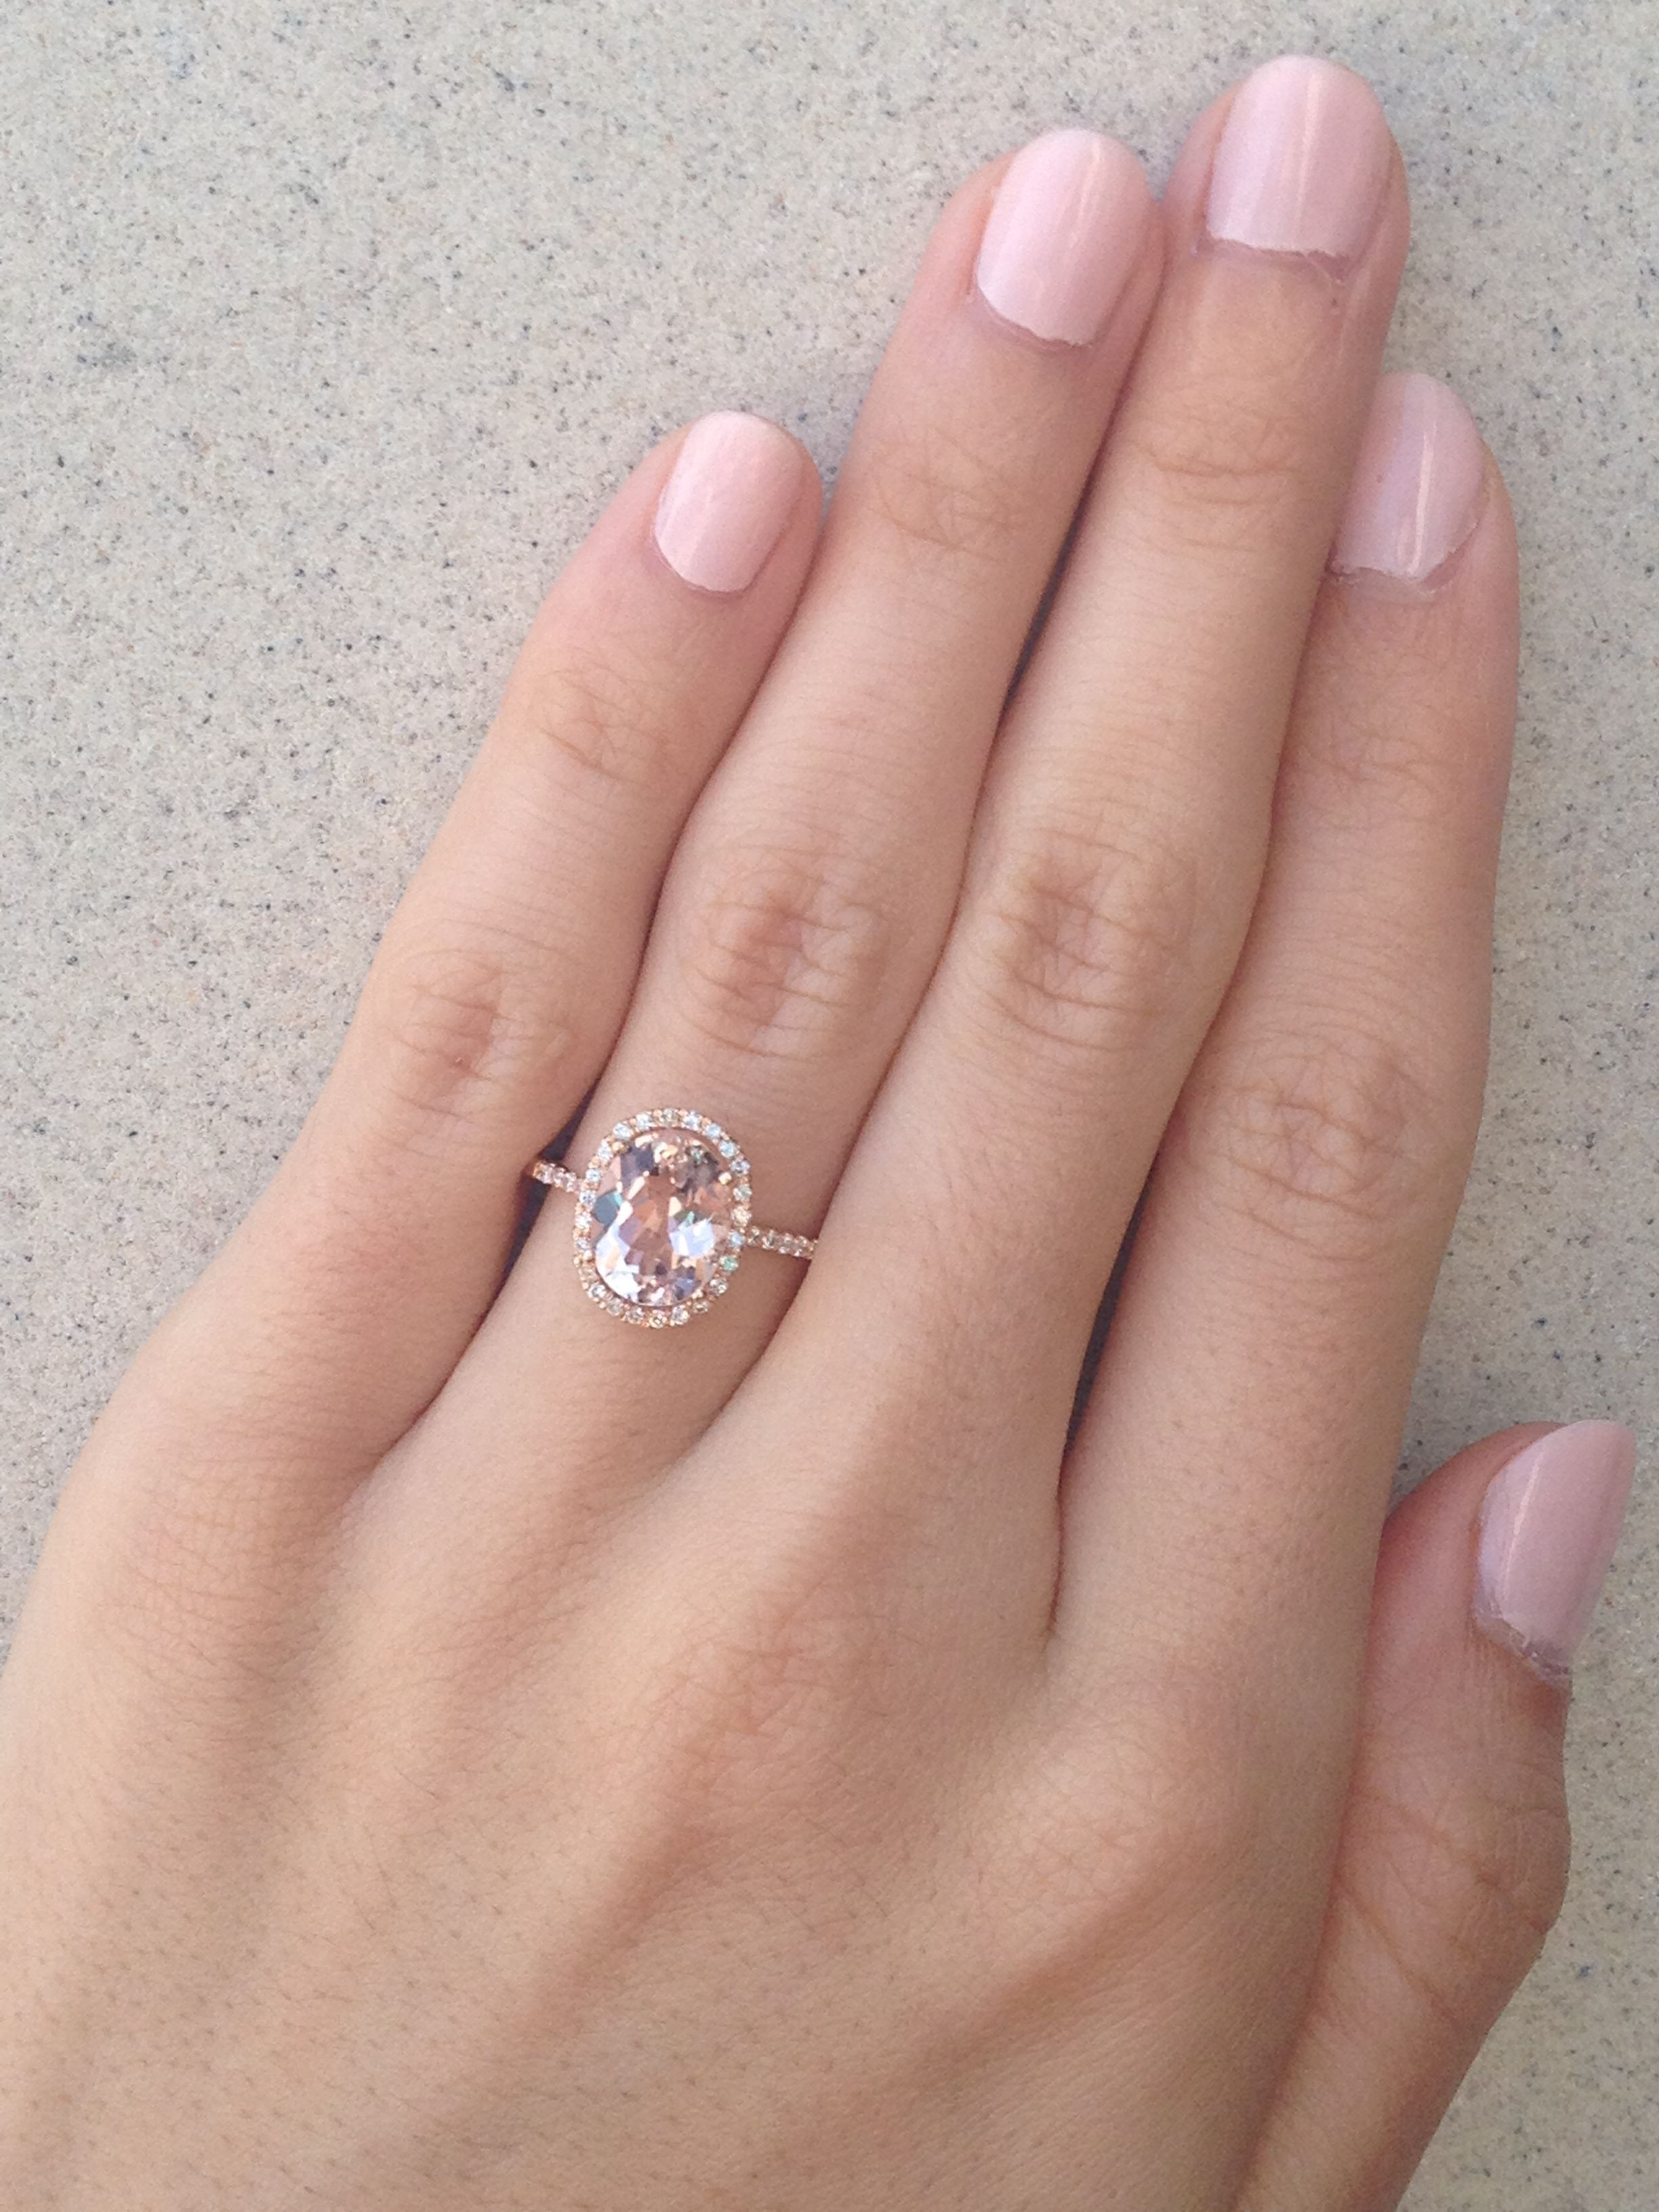 I like white gold... About 3 kar. But this is Rose Gold Morganite ...